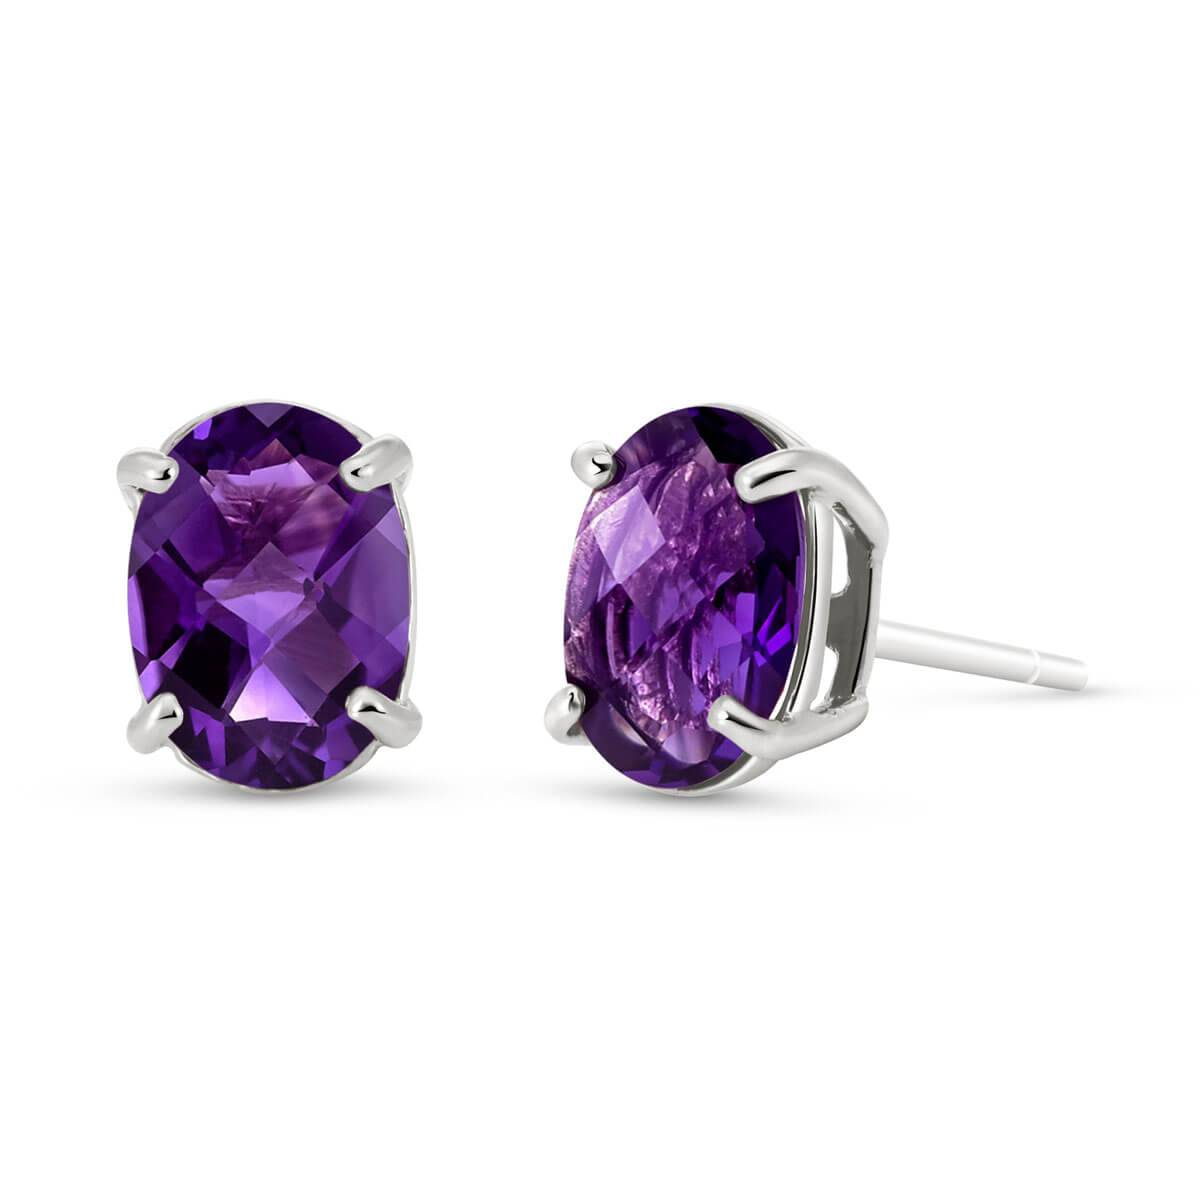 QP Jewellers Amethyst Stud Earrings 1.8 ctw in 9ct White Gold